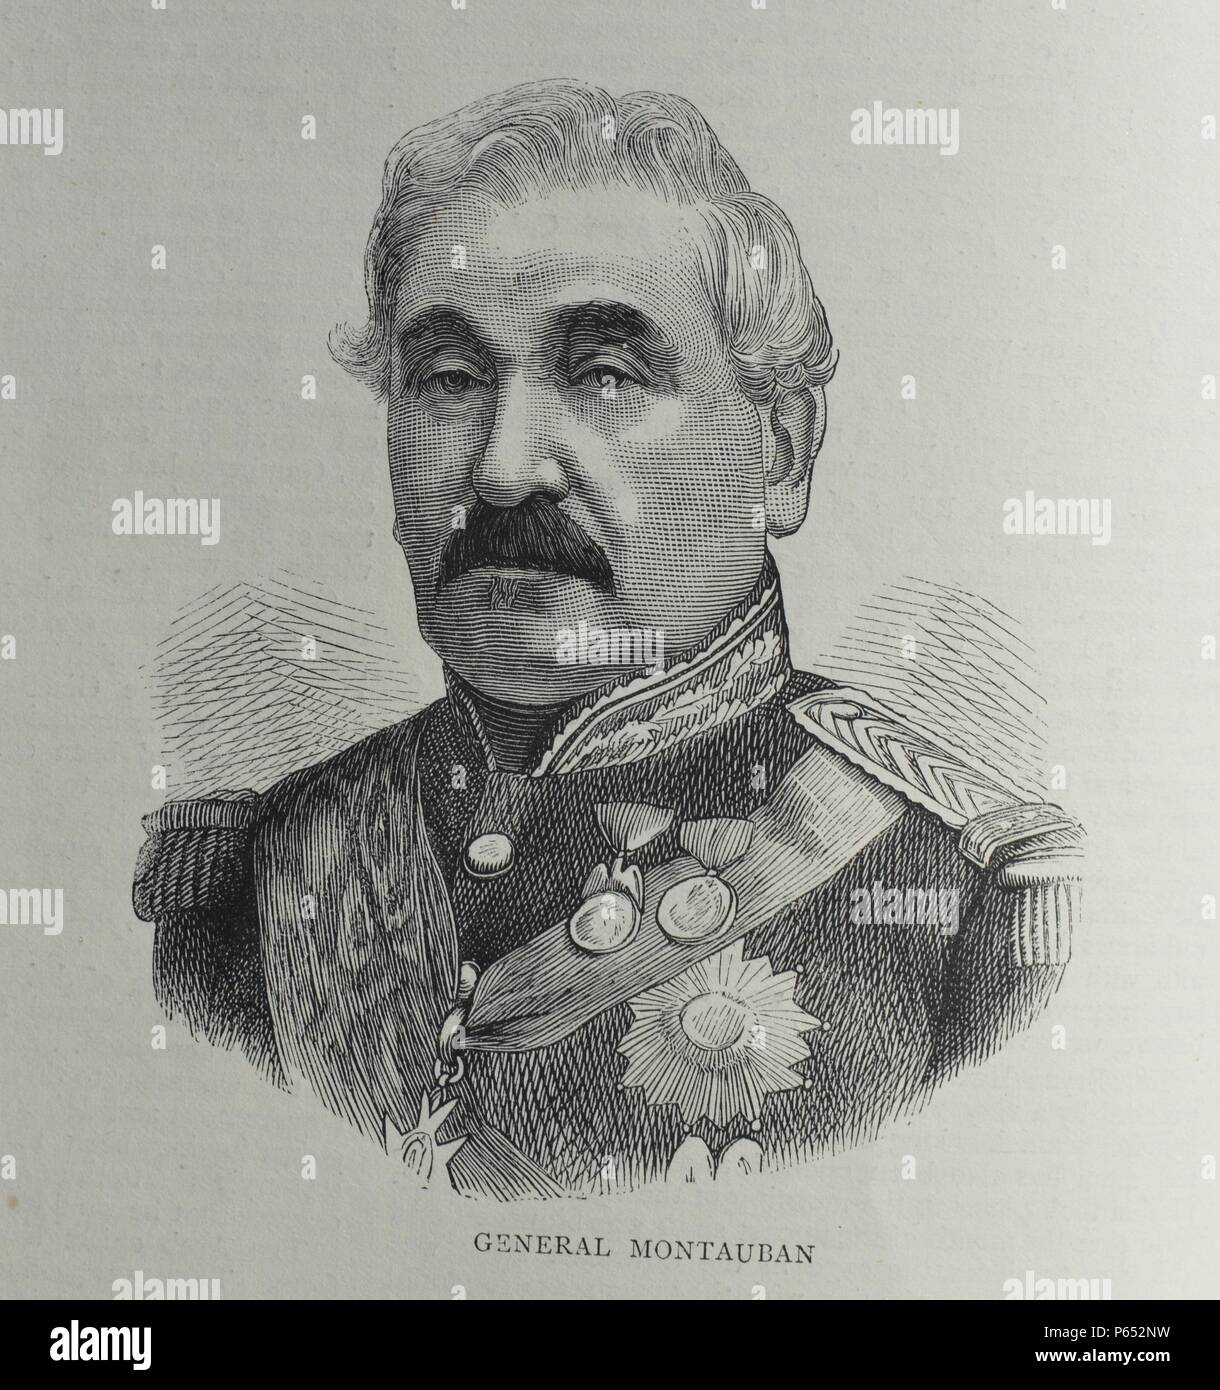 Engraving of Charles Guillaume Marie Appollinaire Antoine Cousin Montauban (1796-1878) A French general, statesman and 31st Prime Minister of France. Dated 1870 - Stock Image